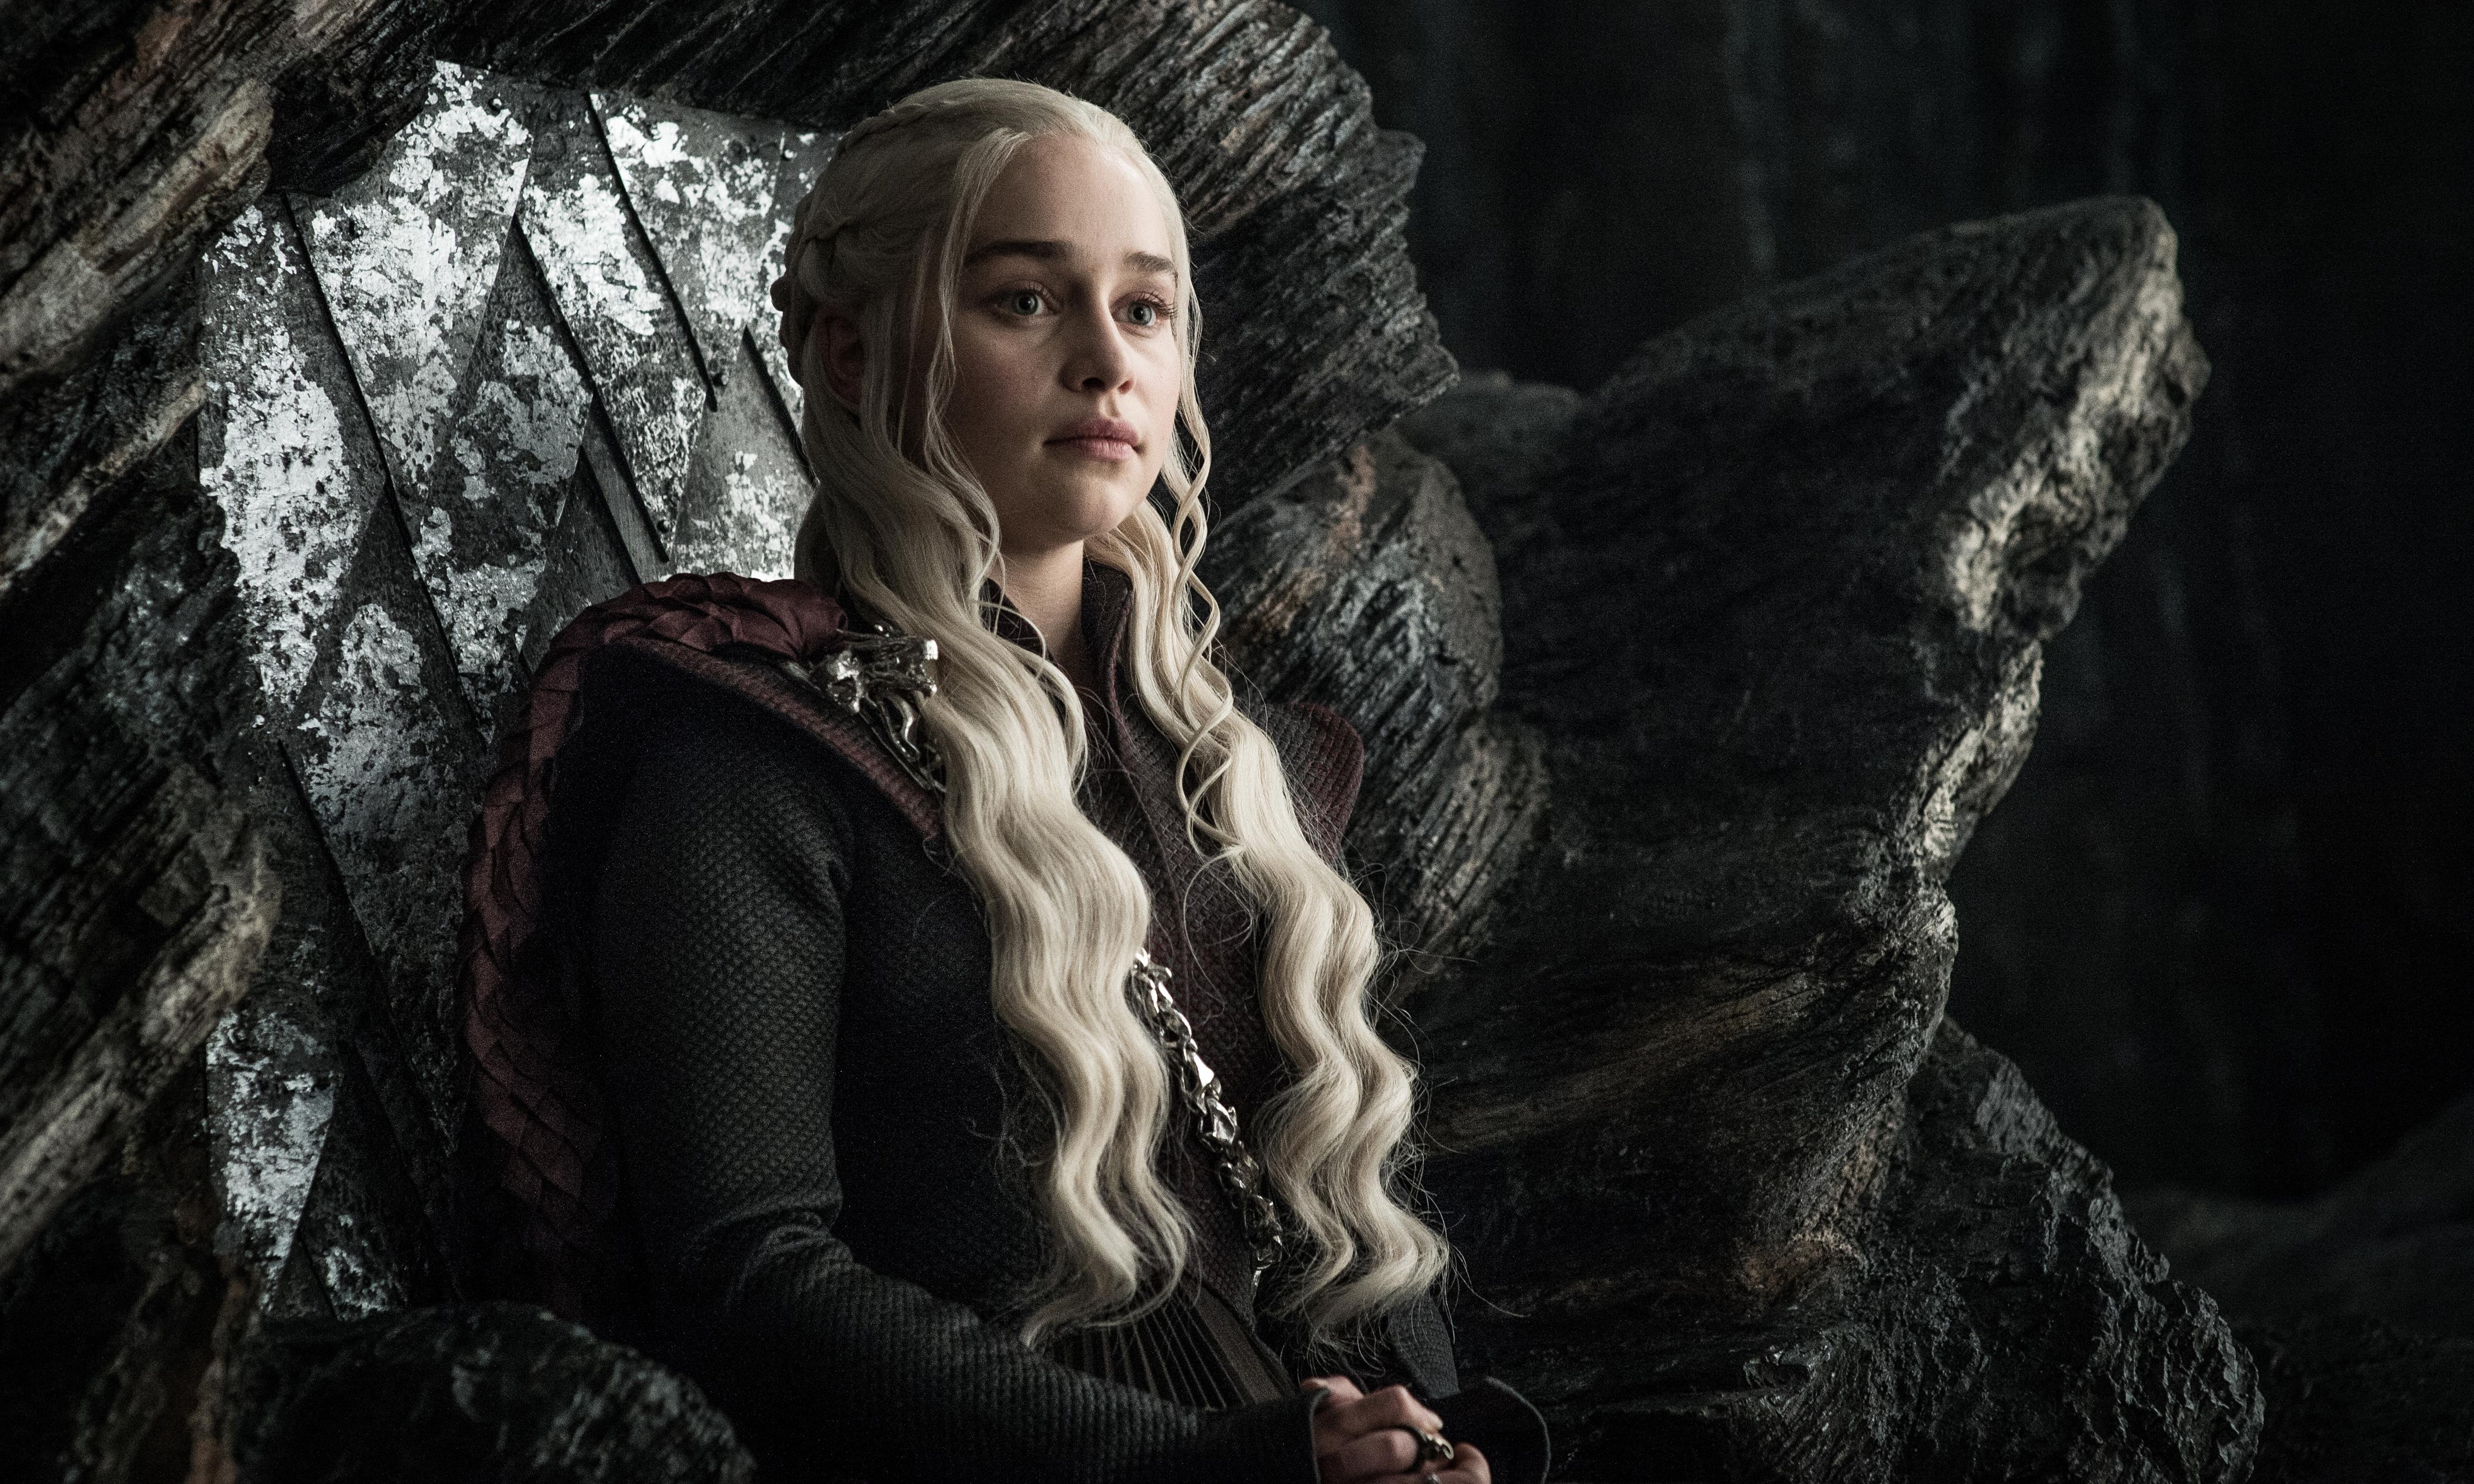 Emilia Clarke spills beans on Game of Thrones' coffee cup culprit